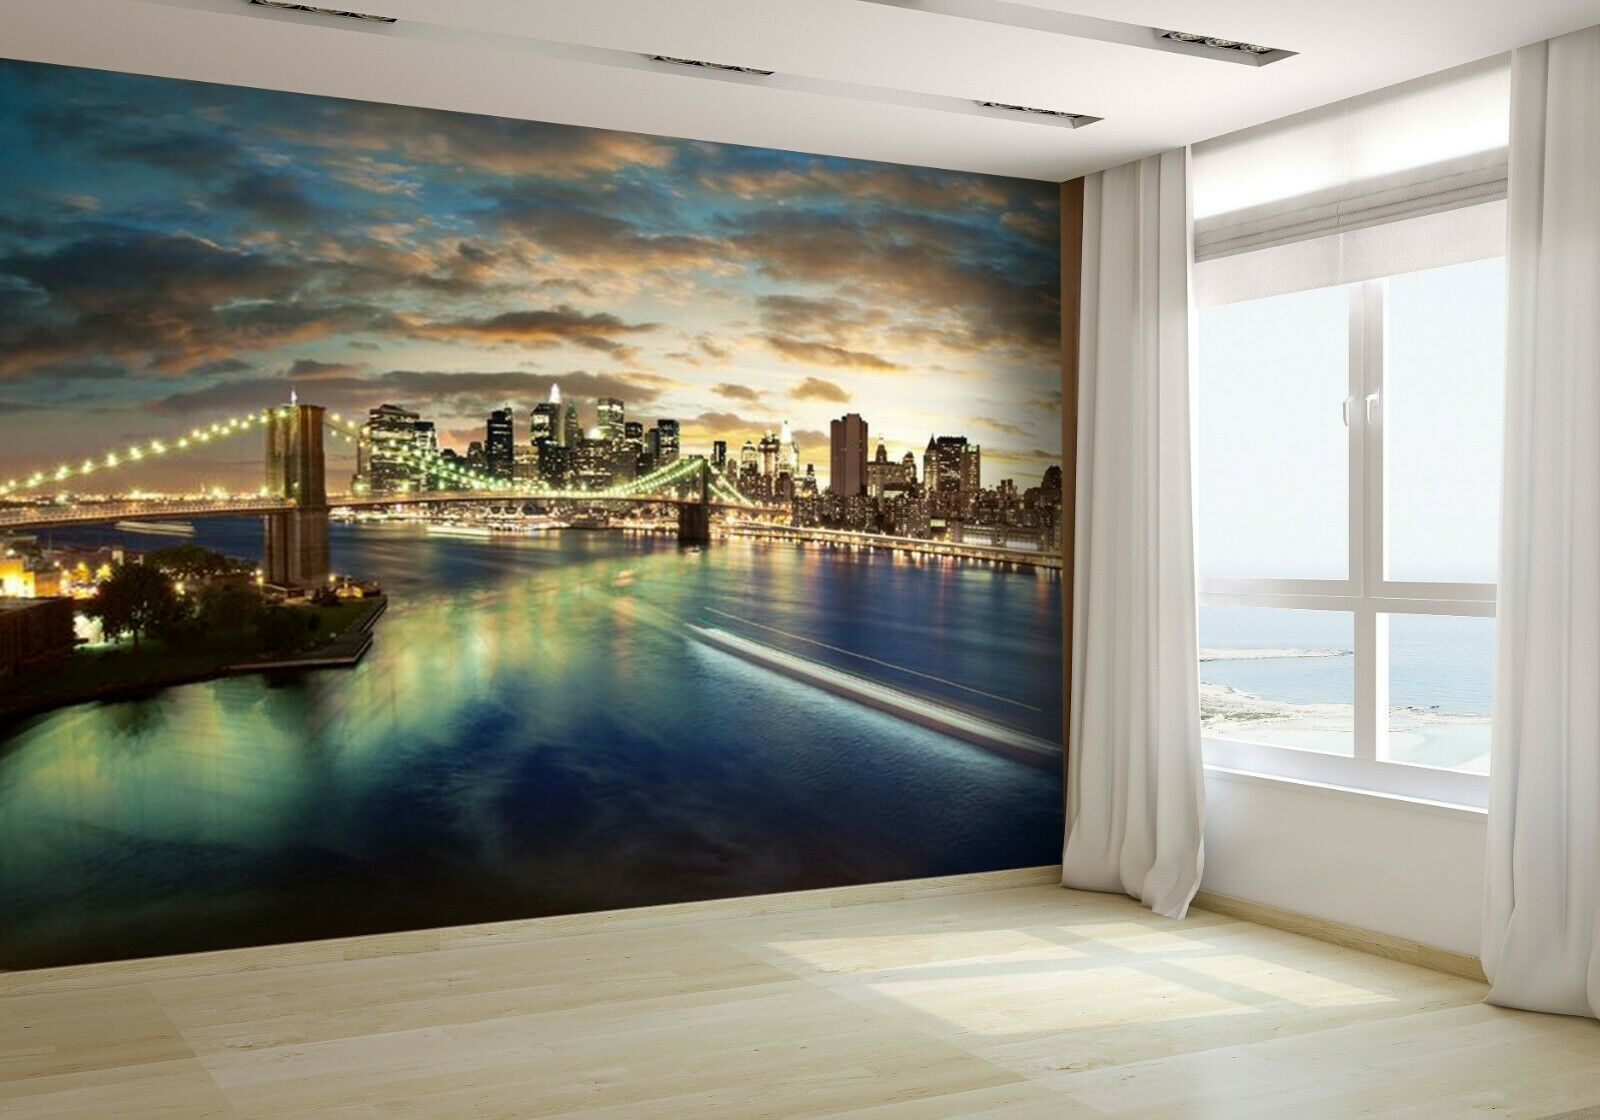 New York Cityscape - After Sunset Wallpaper Mural Photo 9316759 budget paper